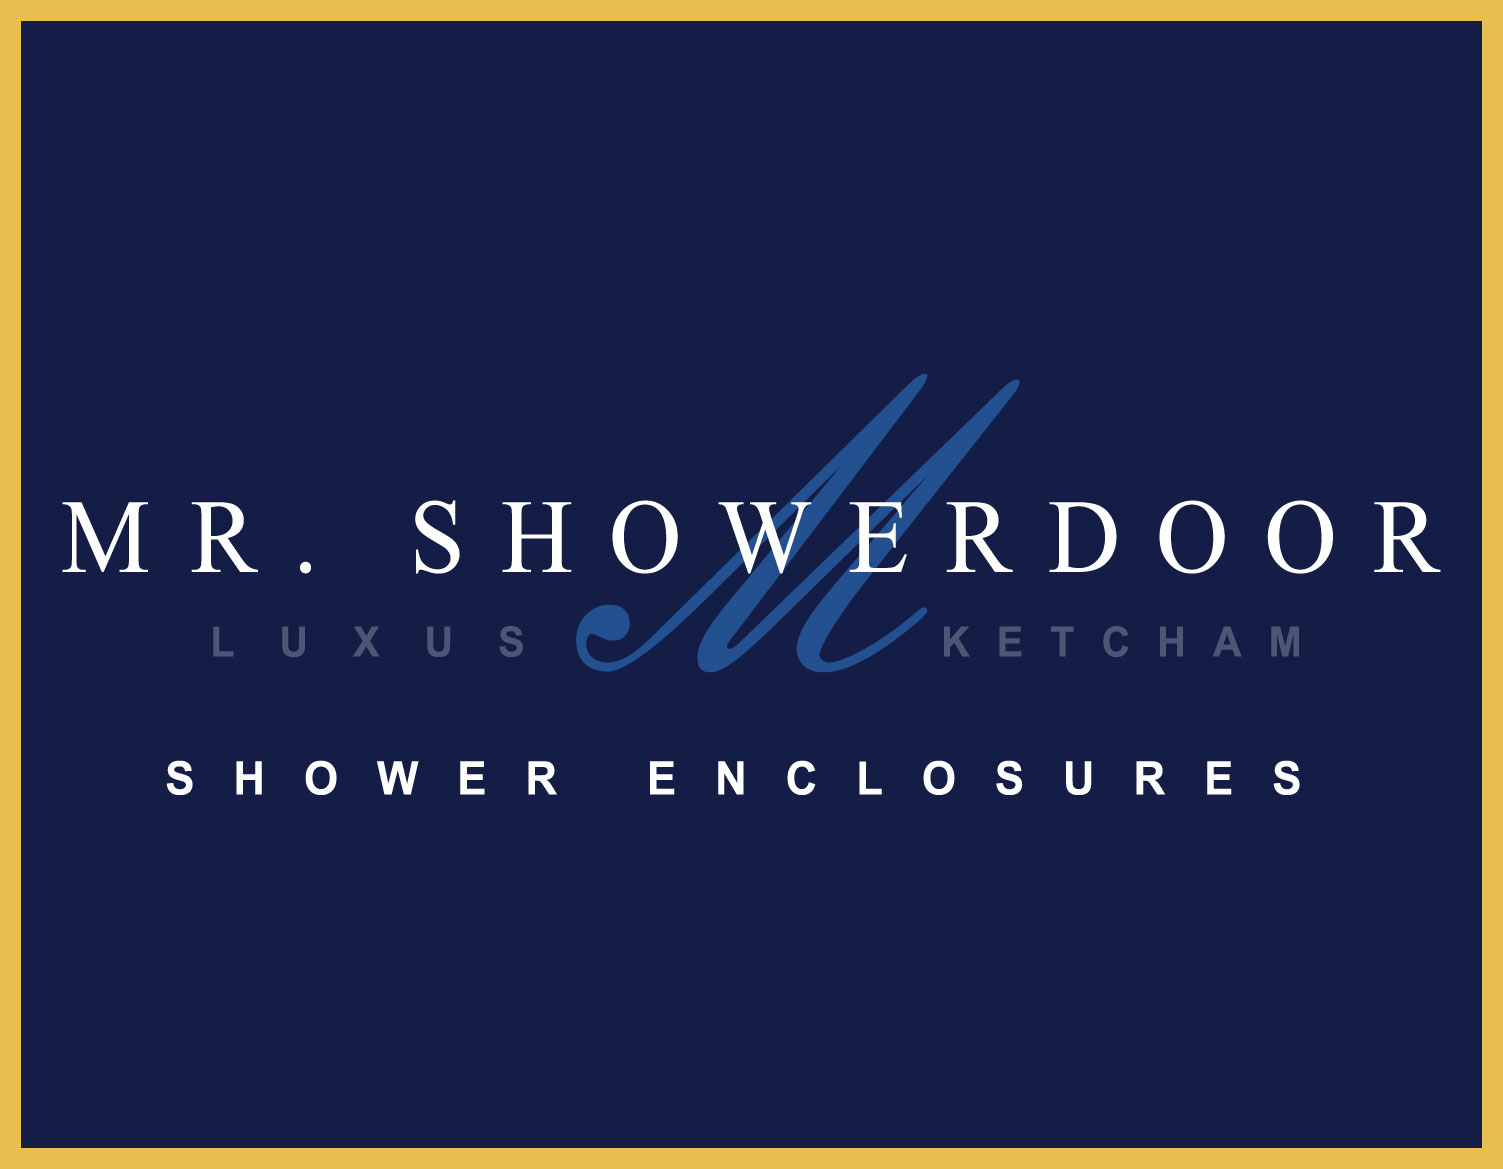 Mr. Shower Door